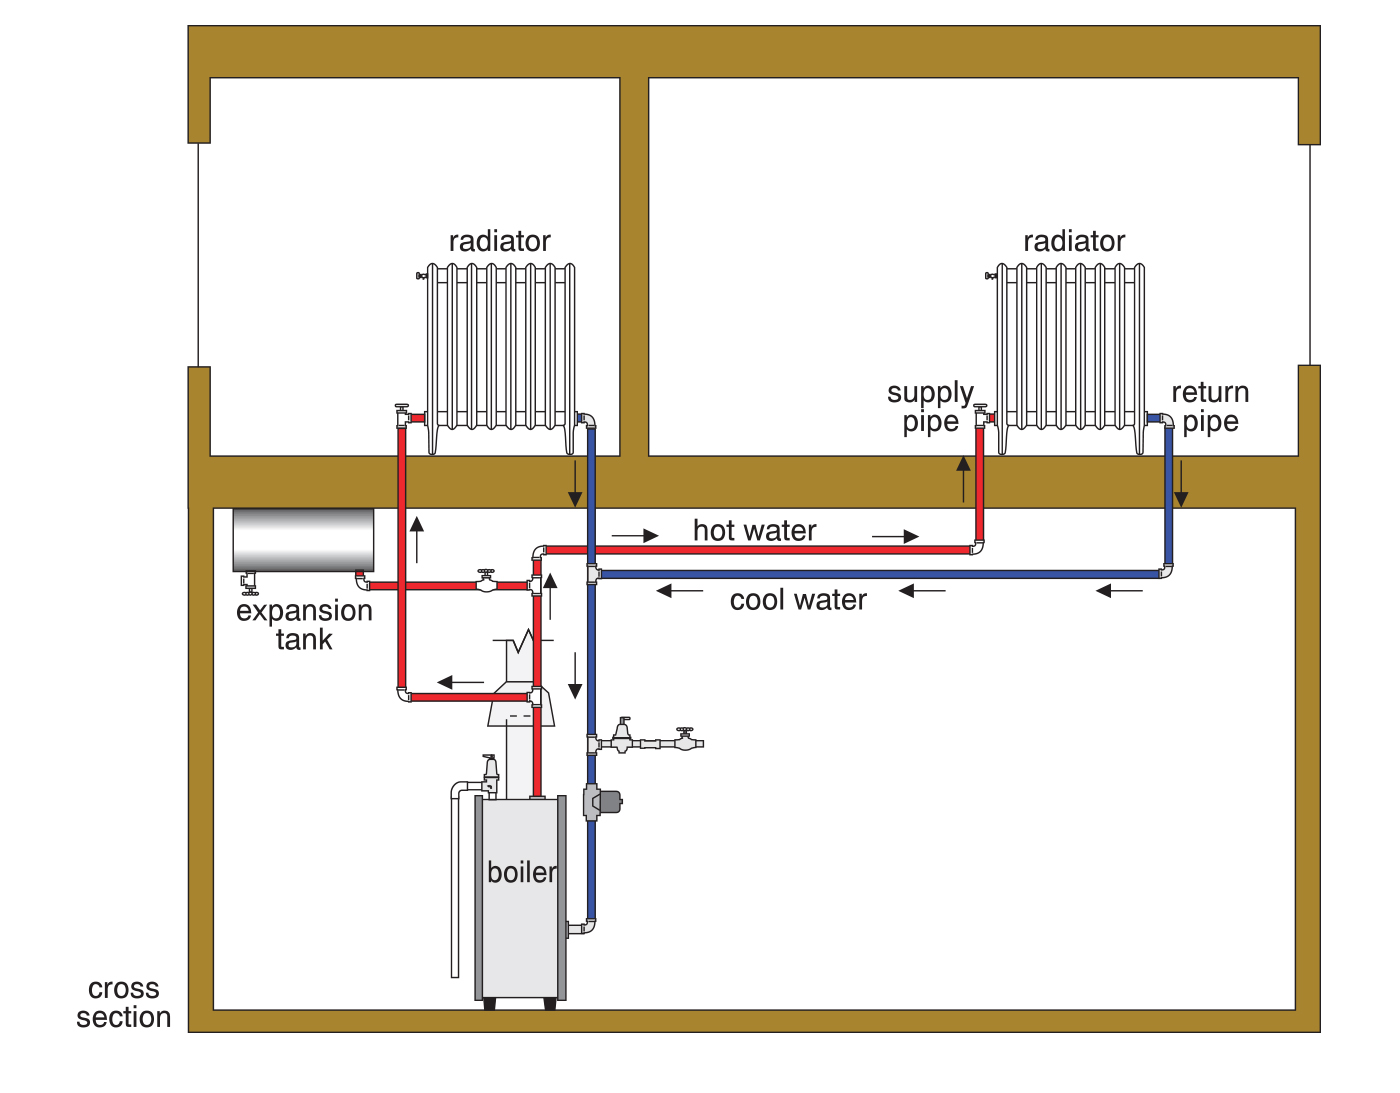 Illustration showing a two-pipe system with pipes going from the boiler throughout the house.